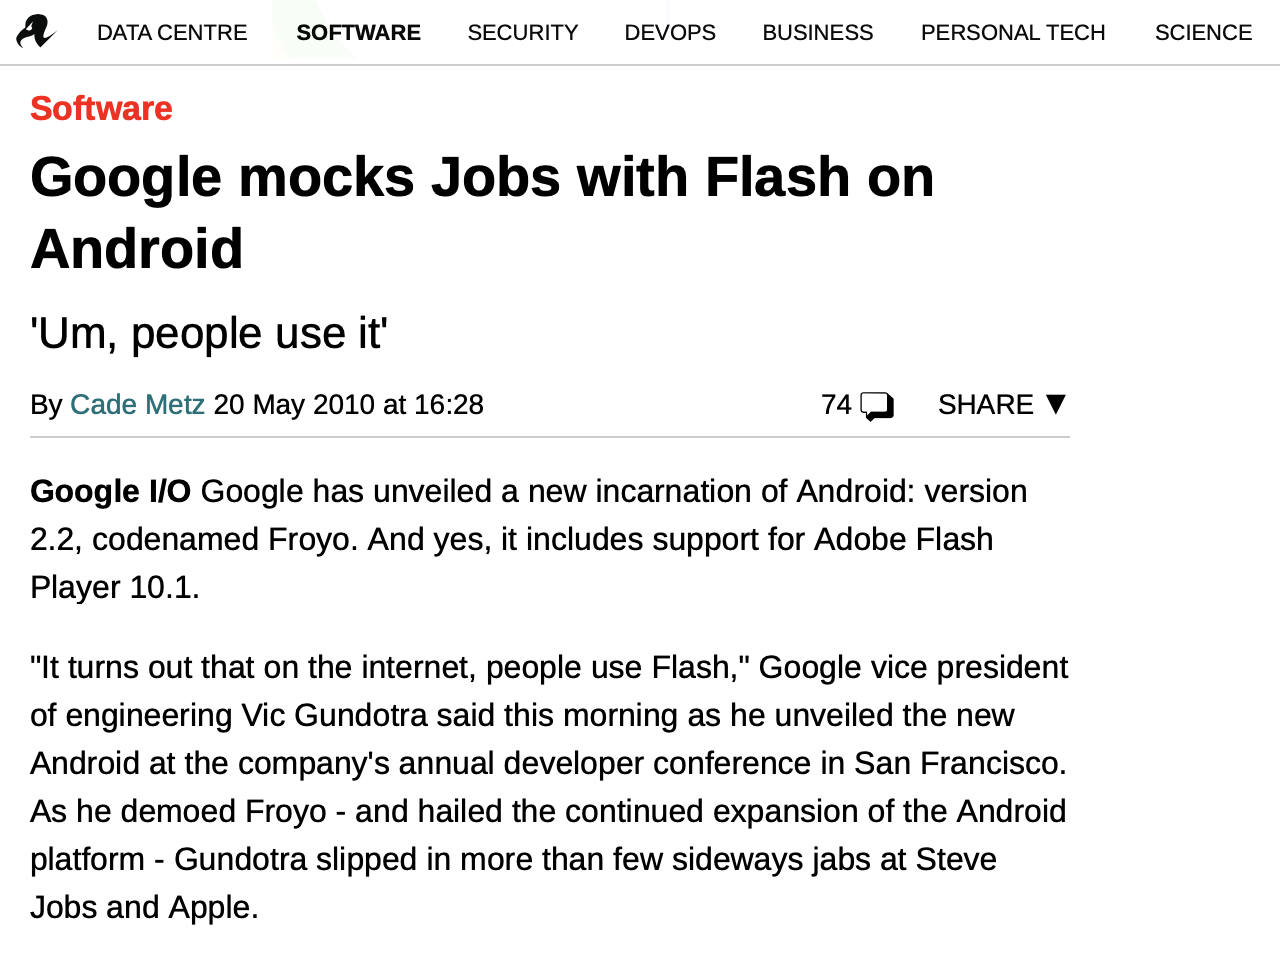 """Google's executives disparaged Apple as fascist and """"North Korea"""" for not supporing Flash on iOS, before giving up itself. The tech media overwhelmingly supported Google and offered very little intelligent critique based on facts becuase they didn't know anything"""